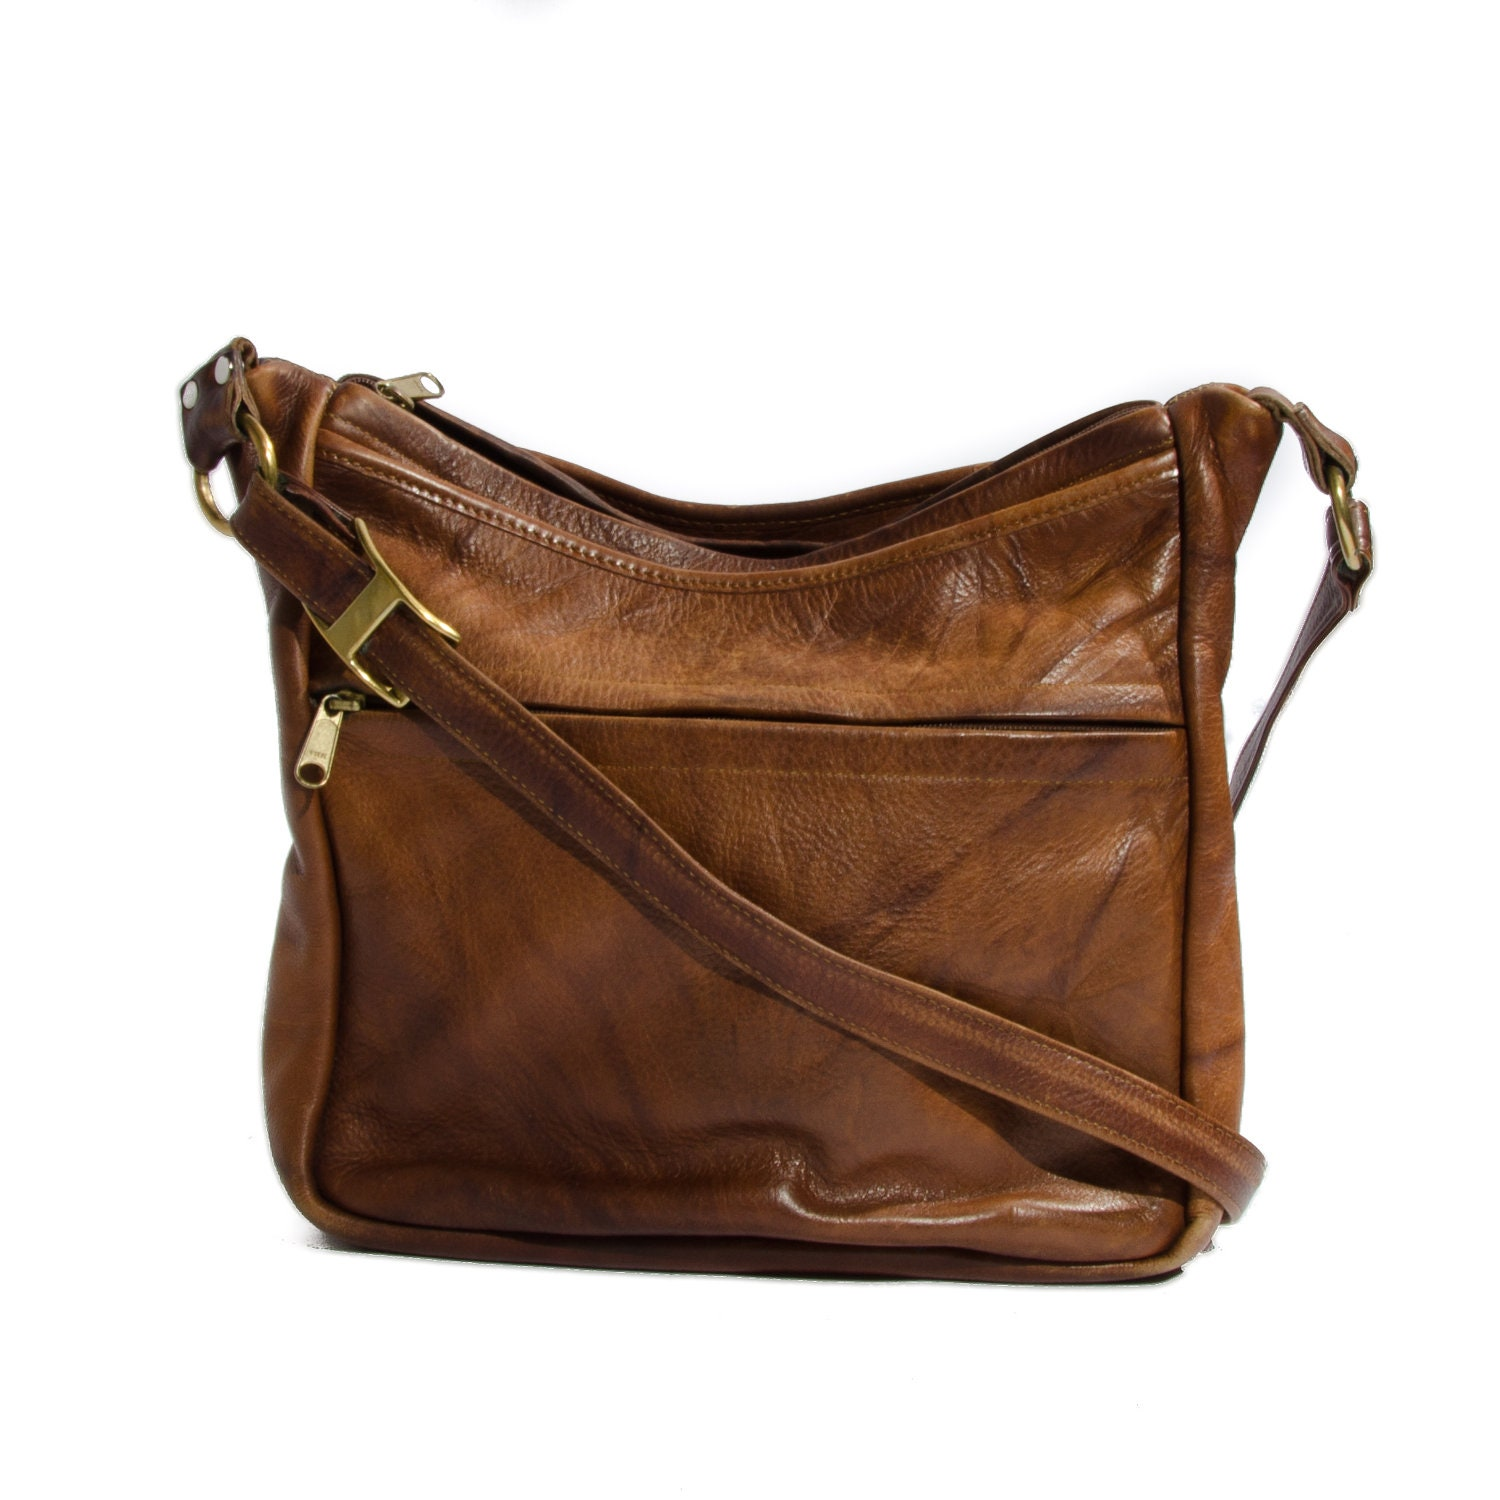 Brown Marbled Leather Shoulder Bag Women's Tote Purse Boho